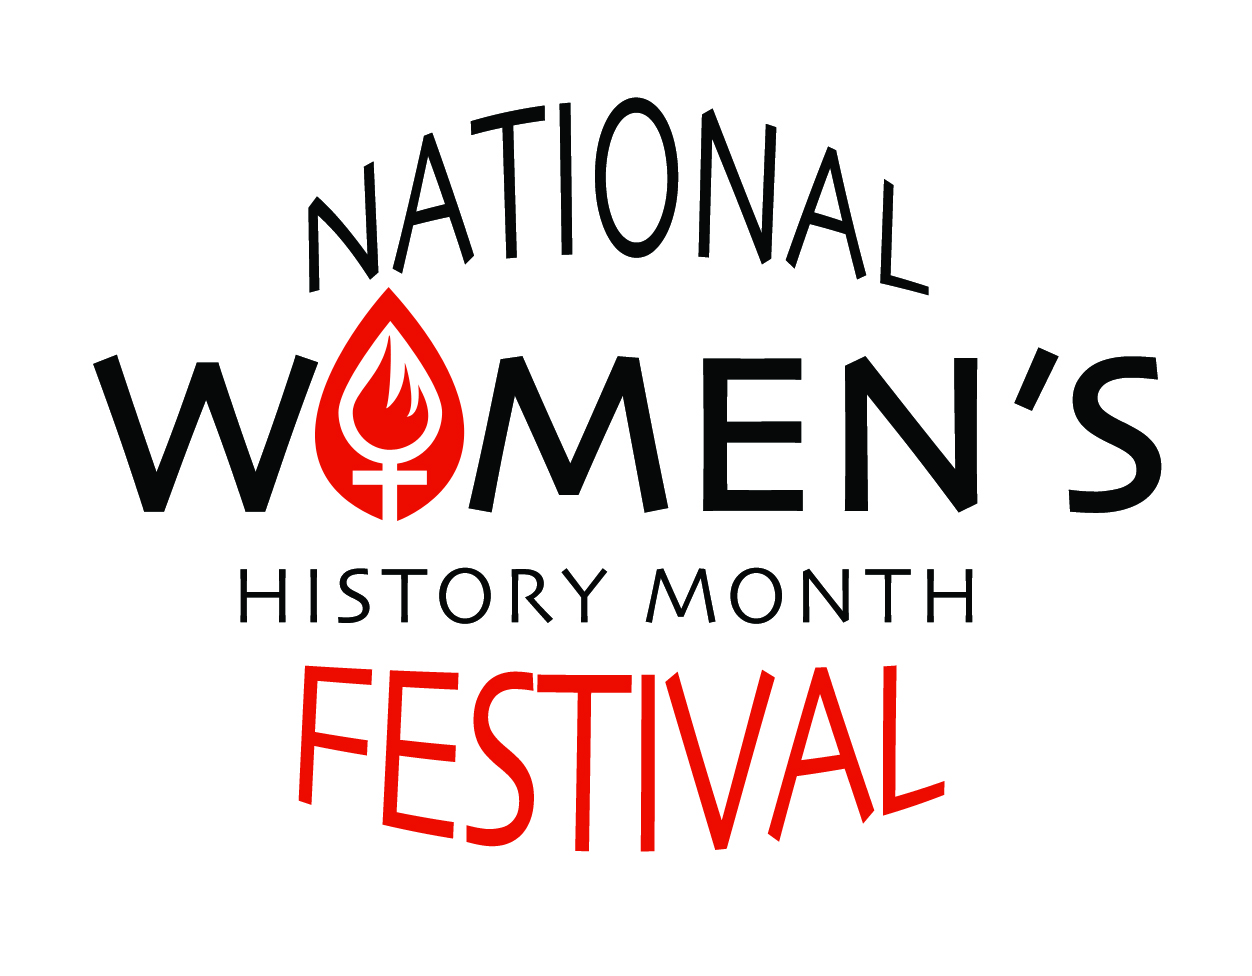 - This article is part of a series of sponsored content provided by AlivenArts and the National Women's History Month Festival.